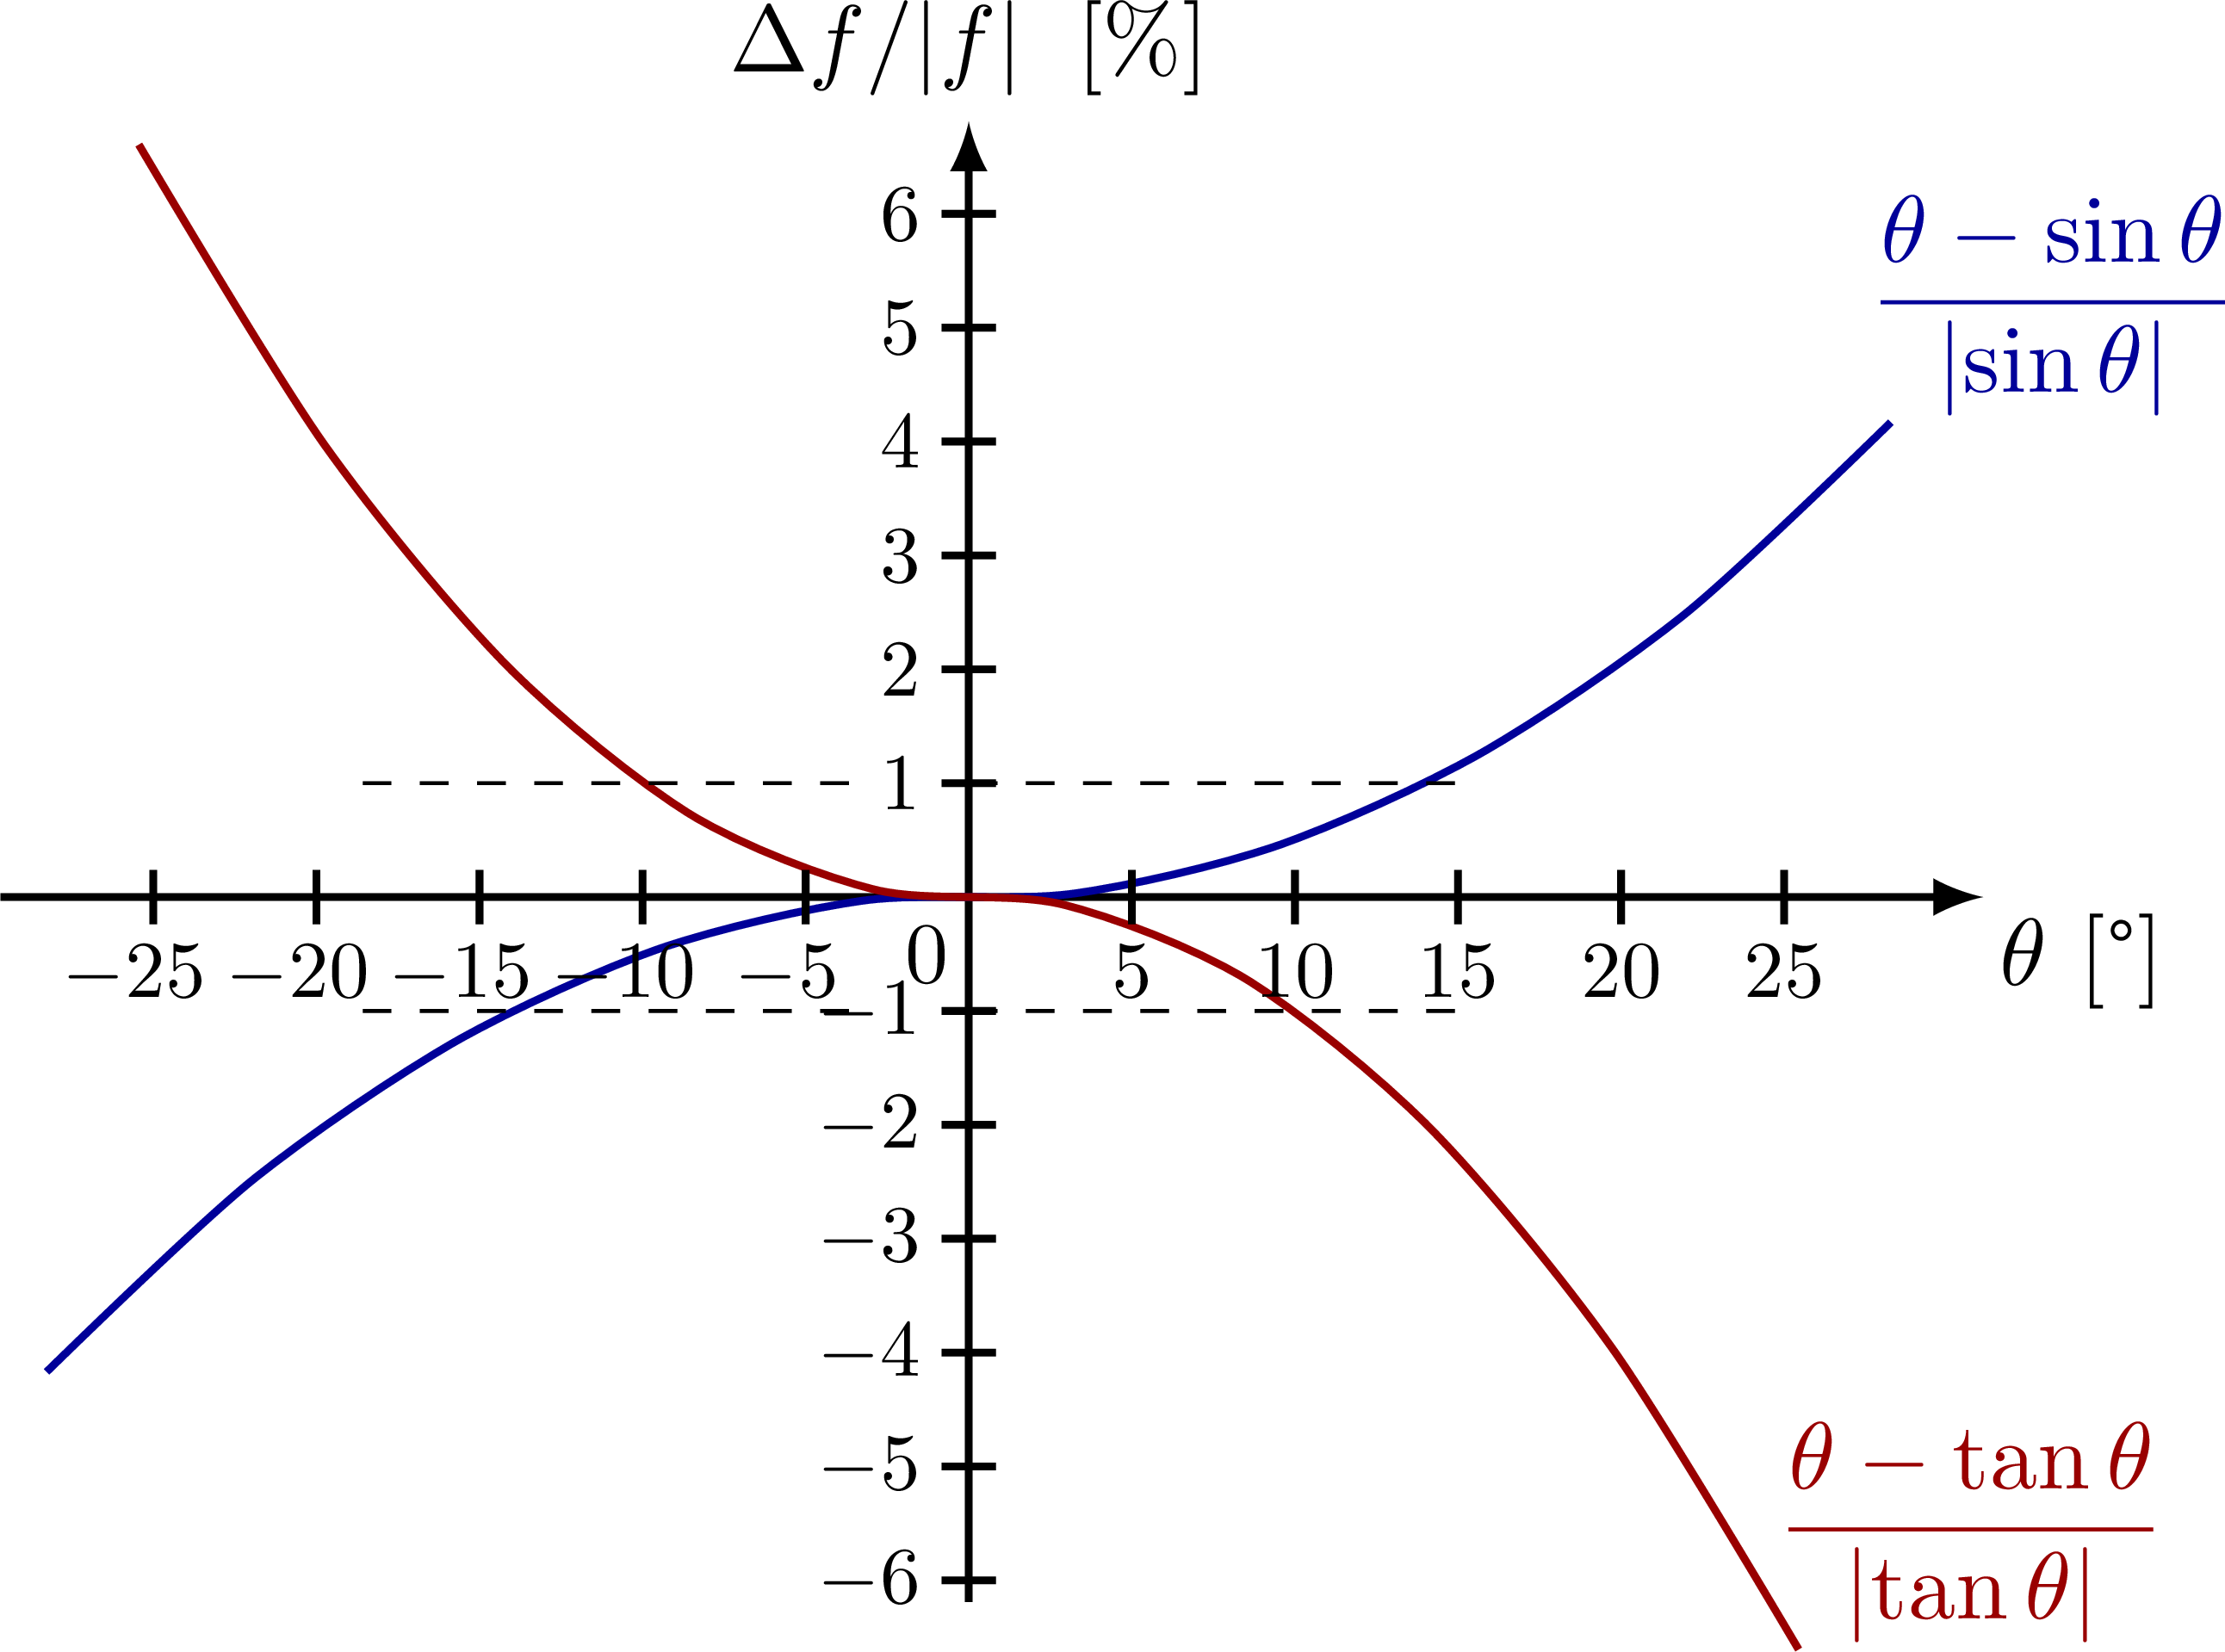 small_angle_approximation-003.png